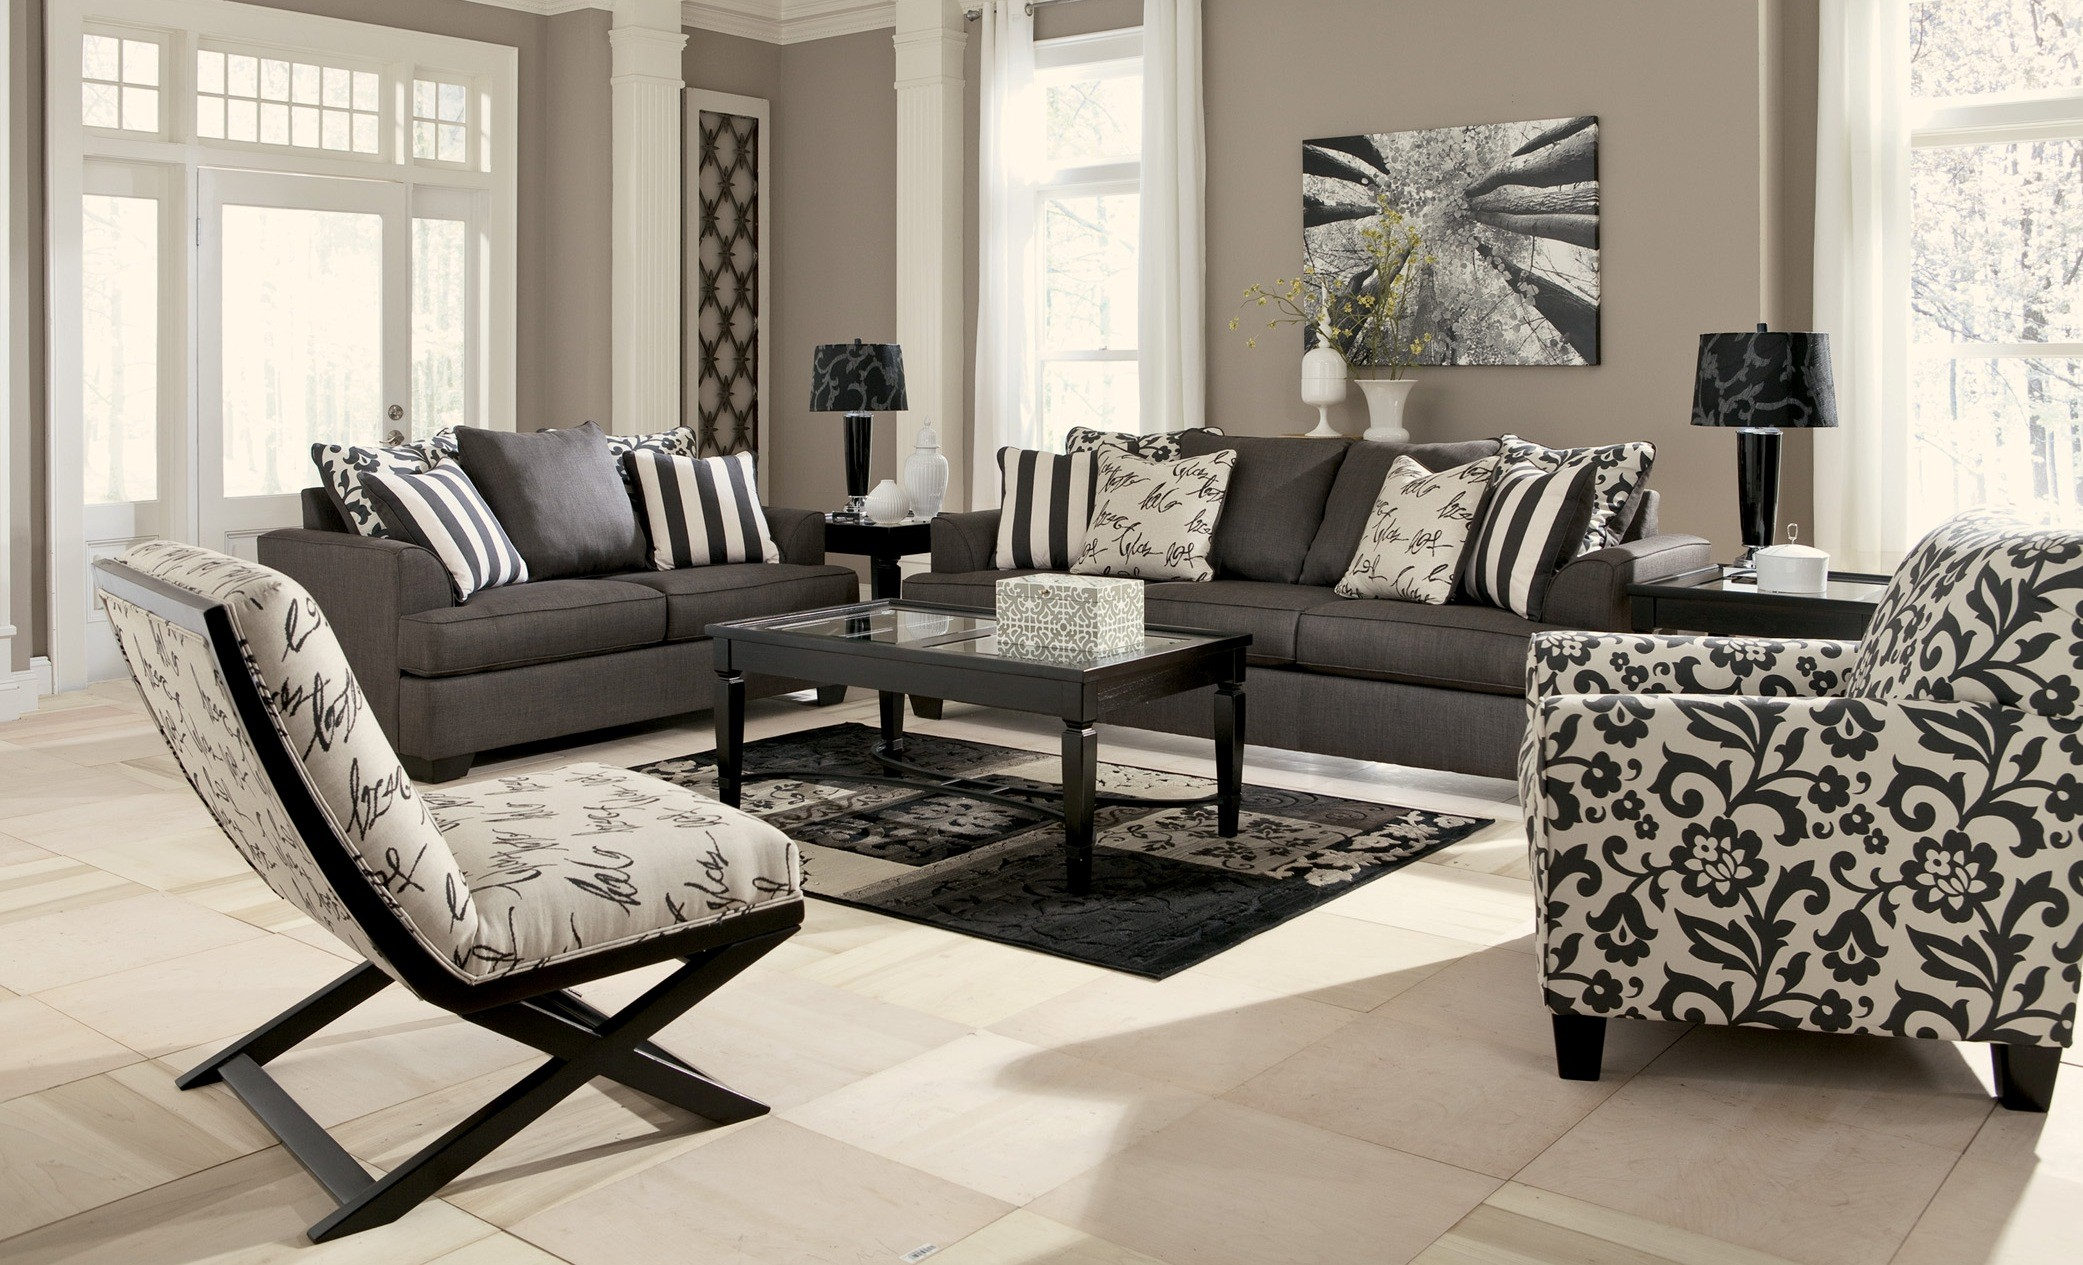 Levon charcoal living room set from ashley 73403 Ashley furniture living room design